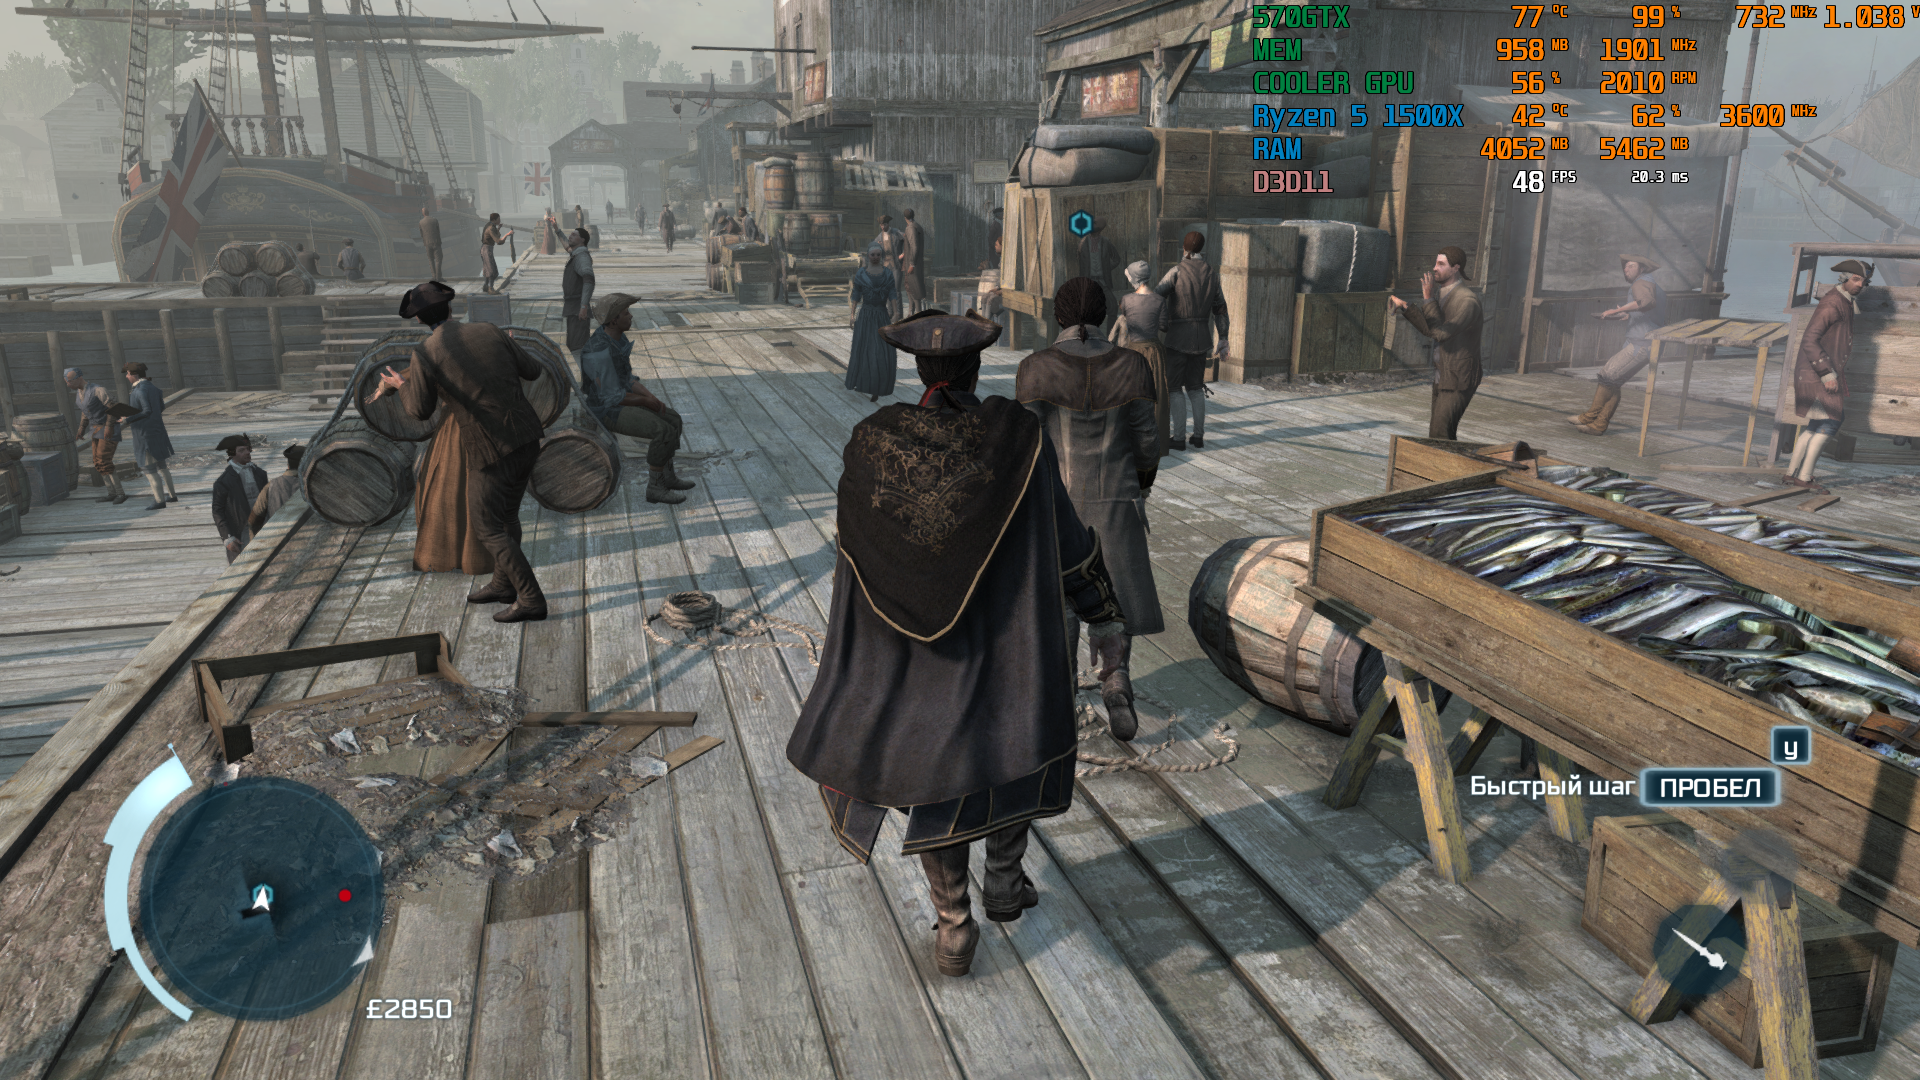 AC3SP_2018_09_21_22_49_01_468.png - Assassin's Creed 3